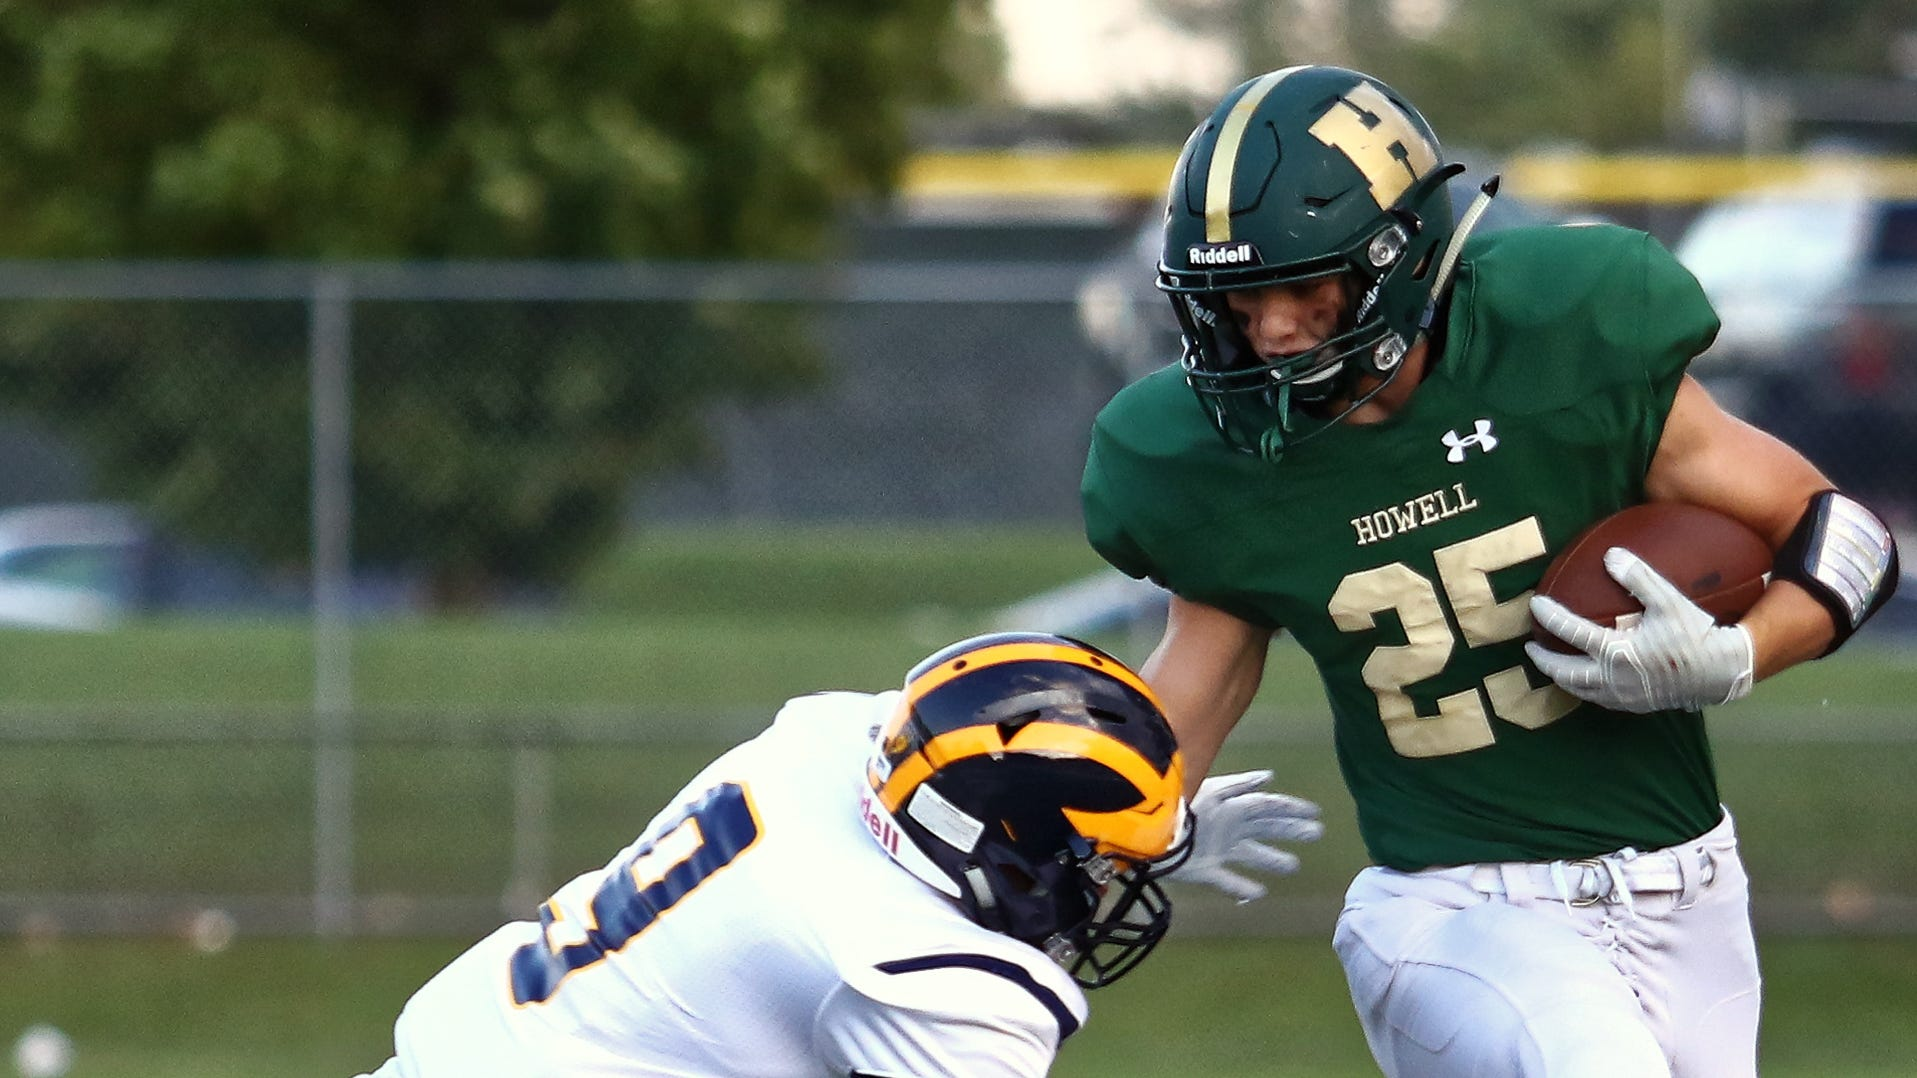 5 takeaways from Hartland-Howell football game